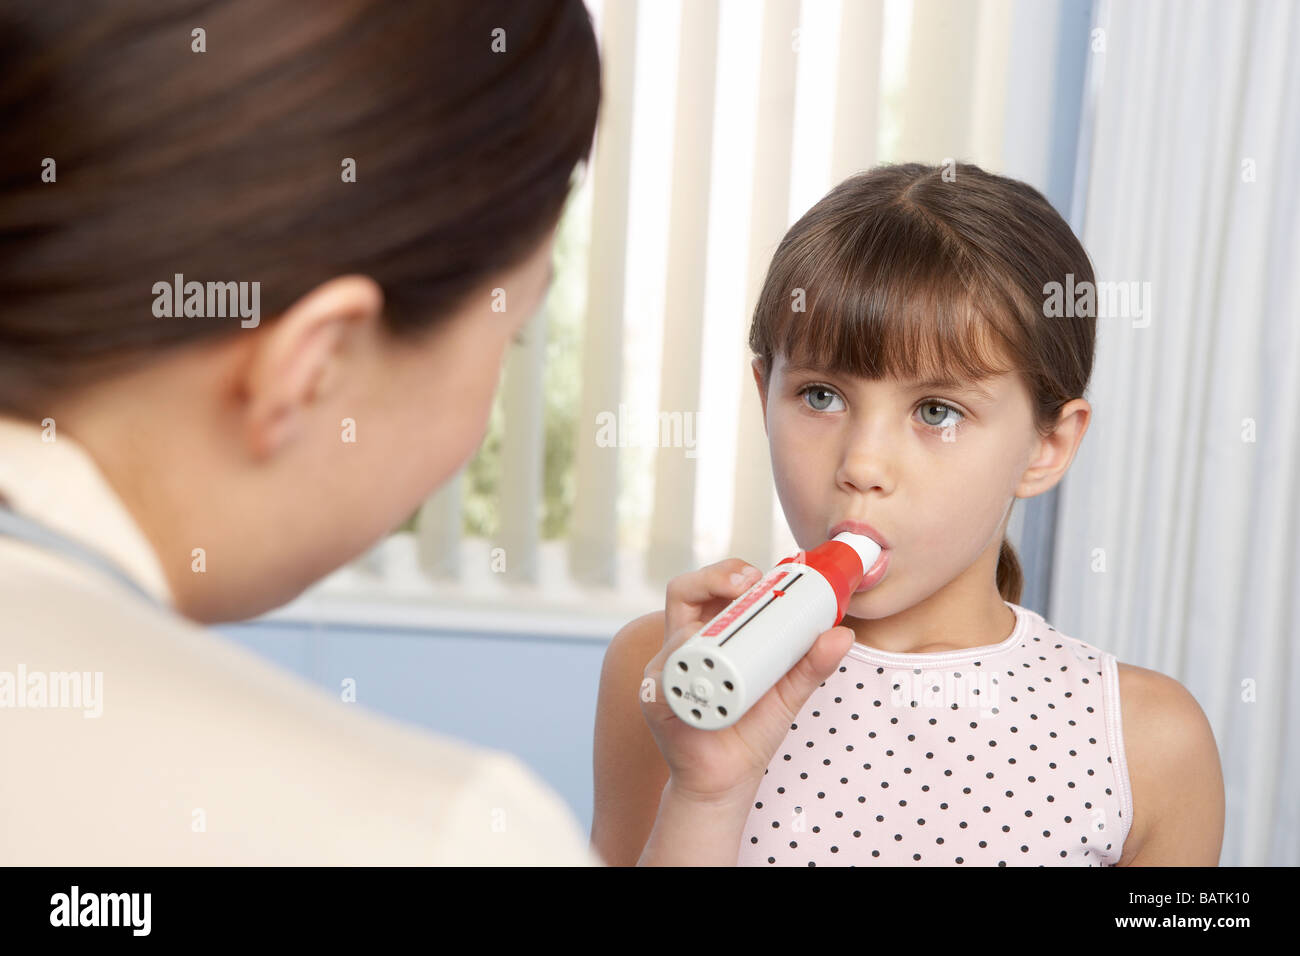 Lung fucntion test. Six year old girl breathing into a peak flow meter (spirometer). - Stock Image